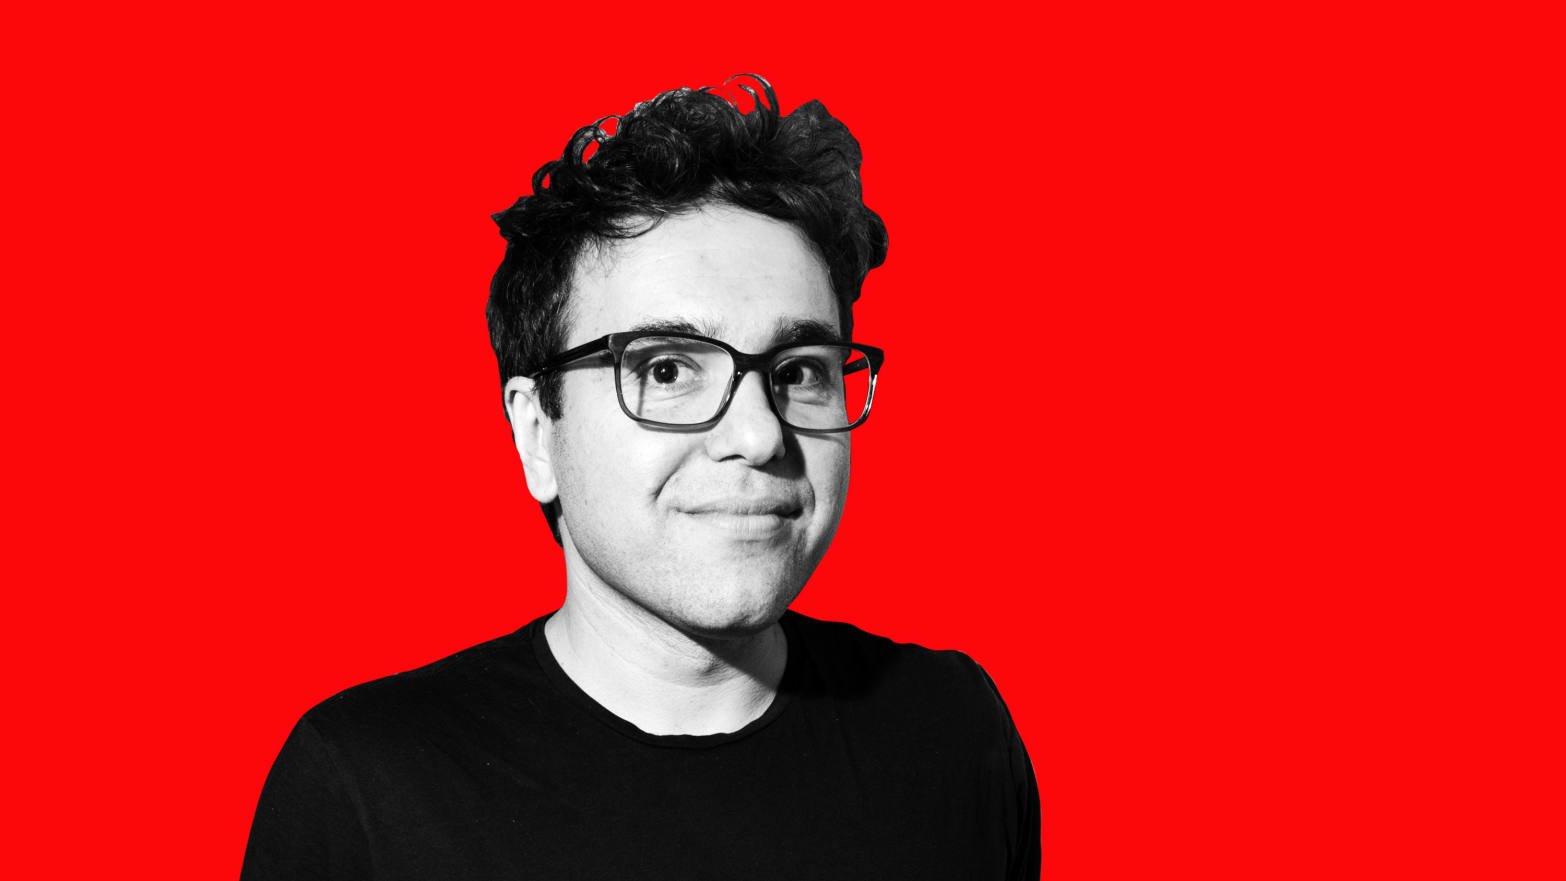 'The Last Laugh' Podcast: Jon Lovett Sounds Off on Trump's White House Correspondents' Dinner Outrage